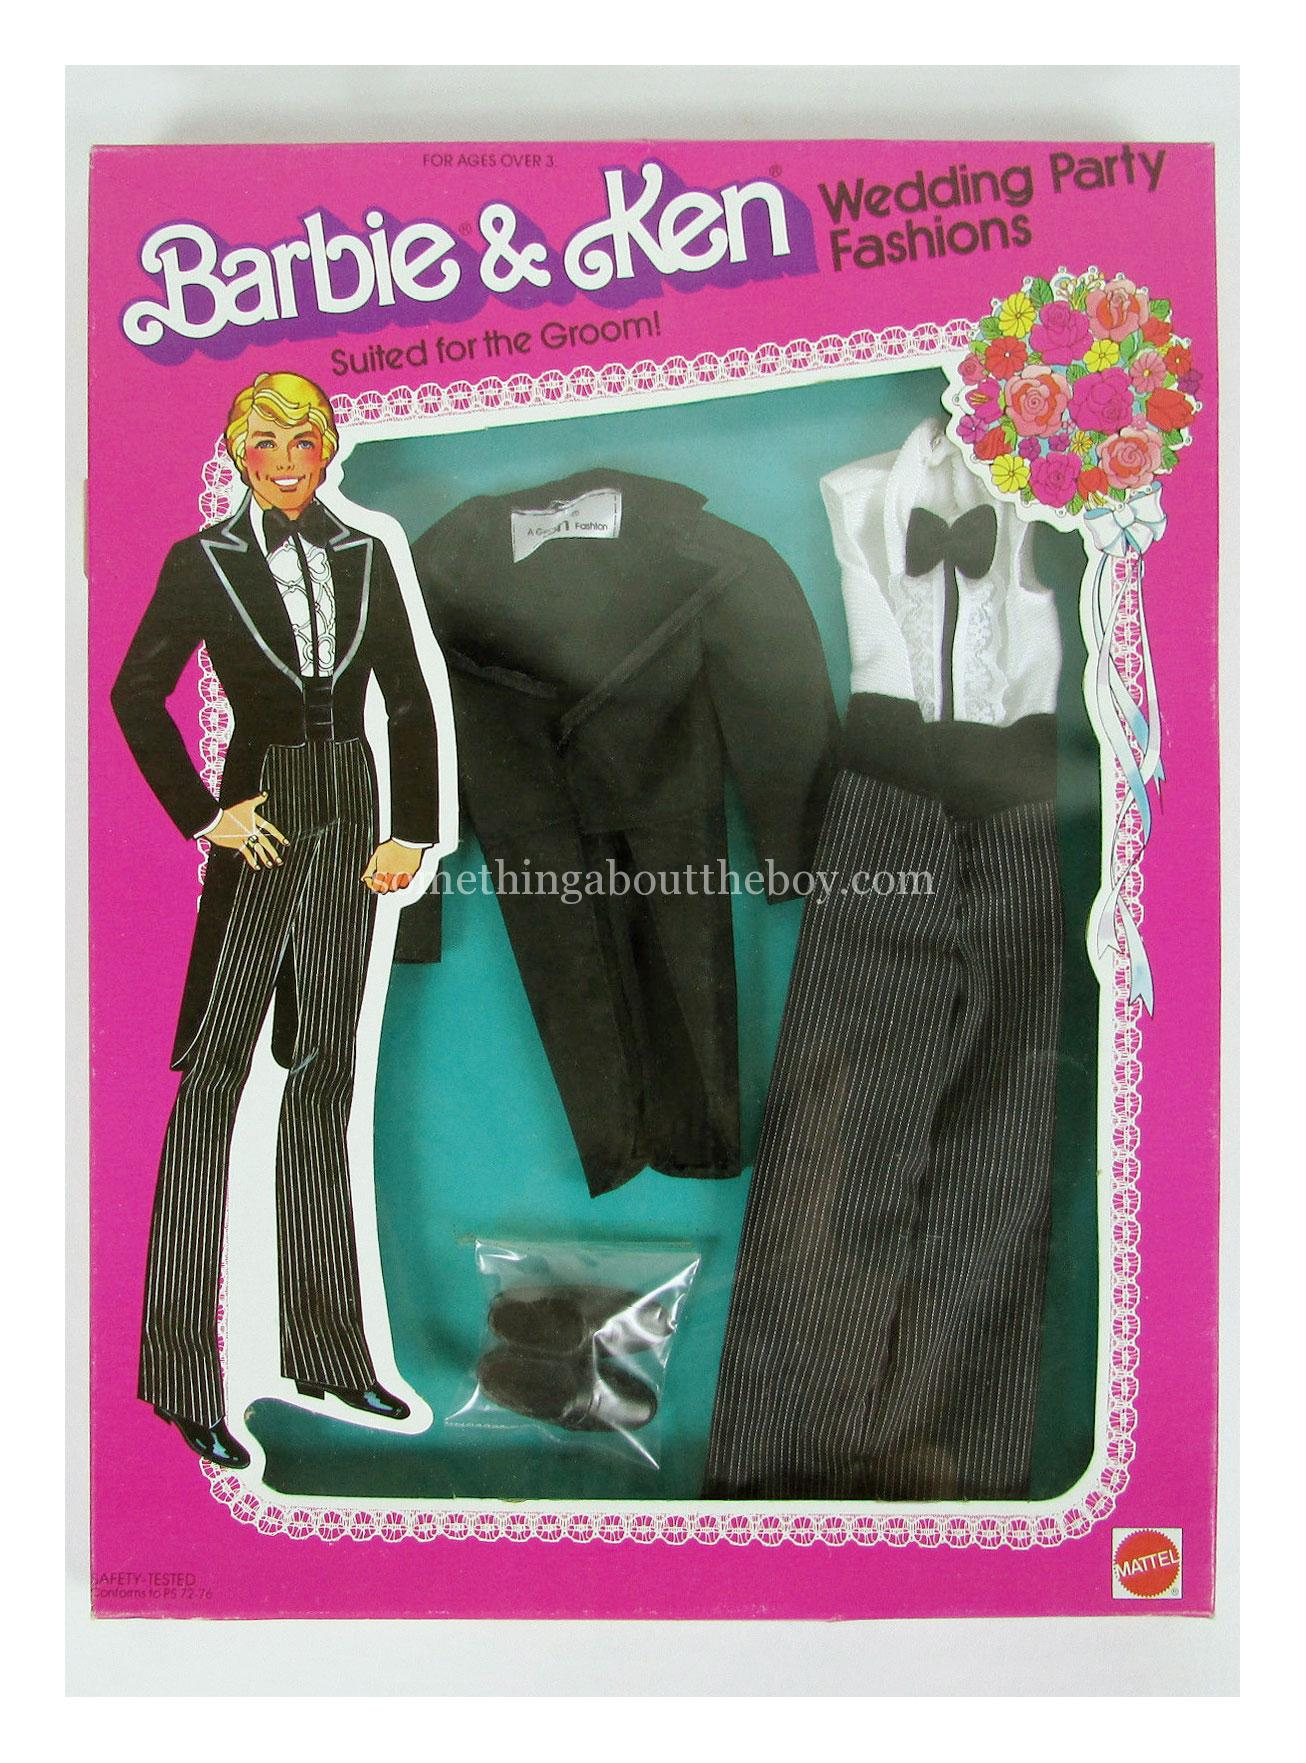 1980 Wedding Party Fashions #1418 (in 1981 version packaging)